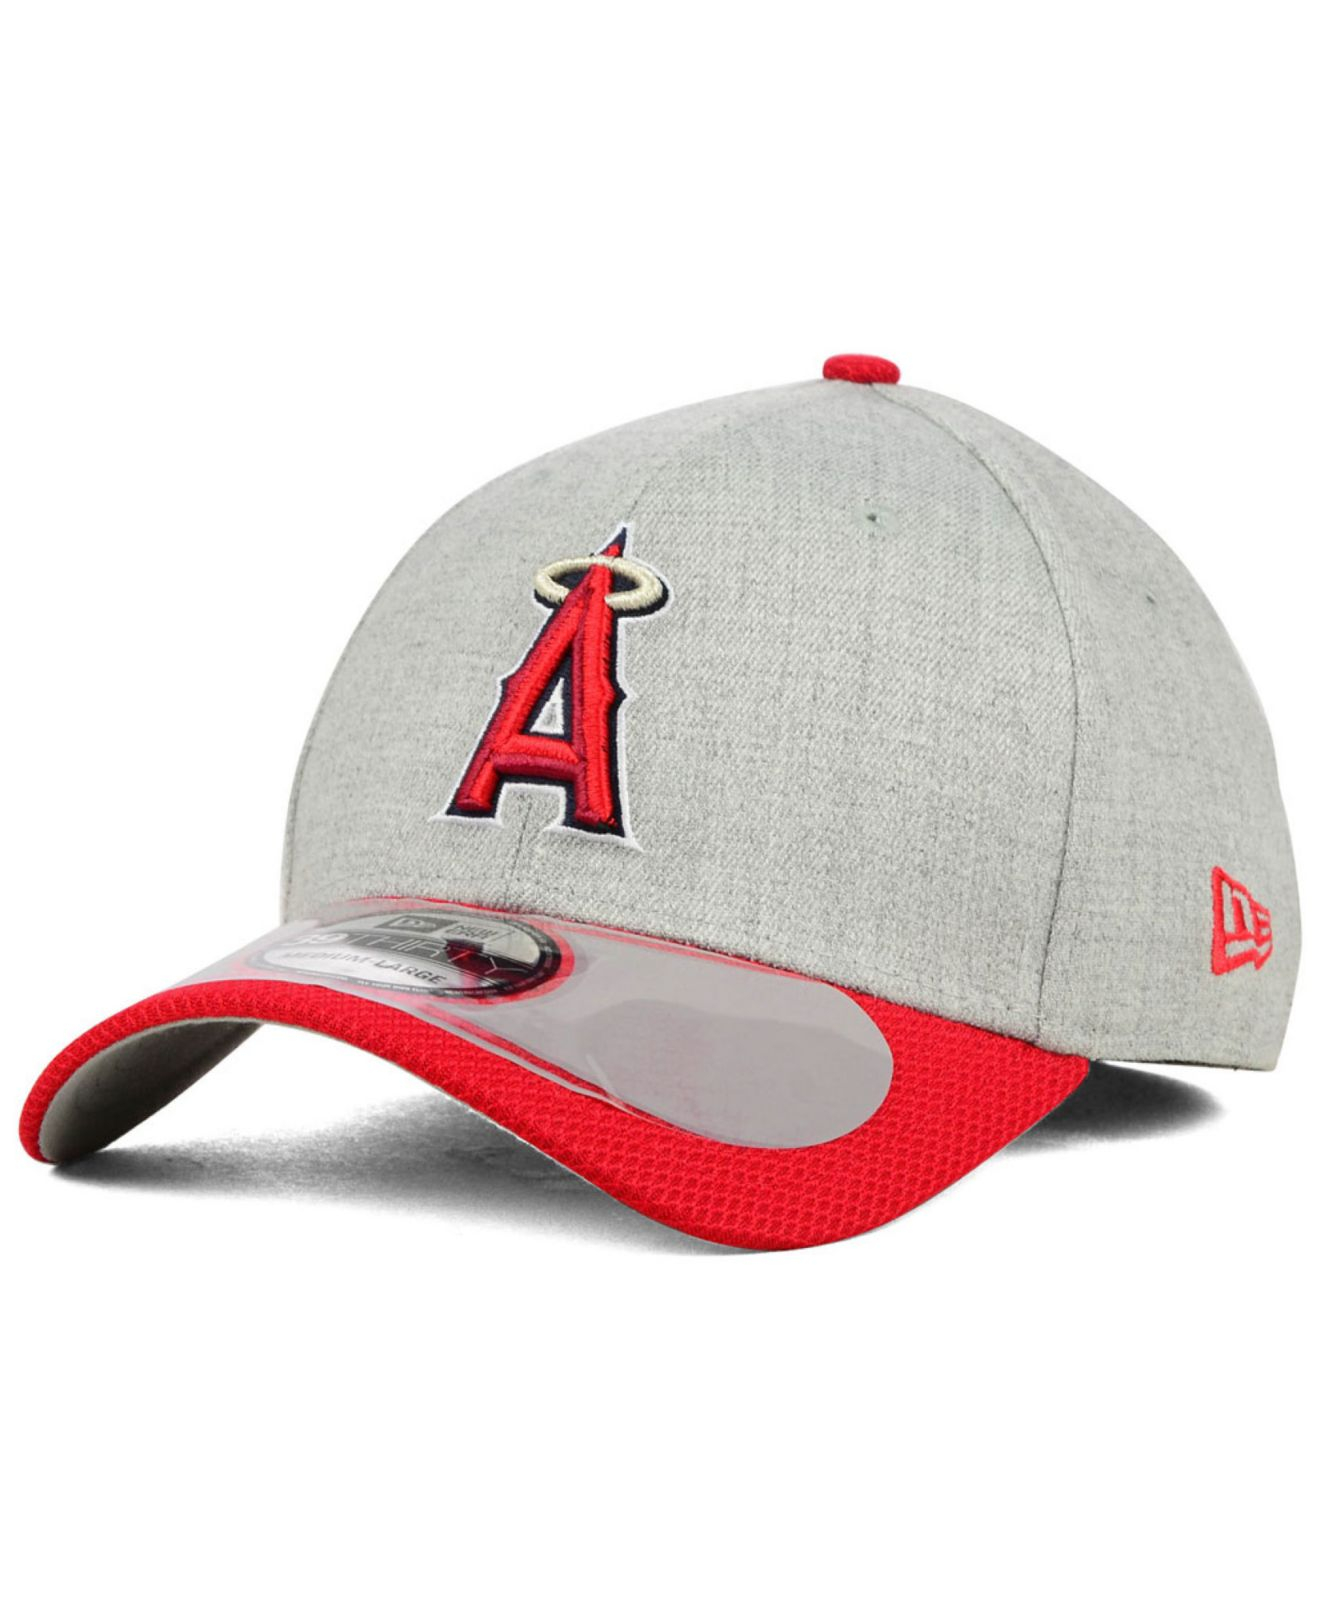 cbf8f4e9 ... sale lyst ktz los angeles angels of anaheim clubhouse 39thirty cap in  1ed8a 0df66